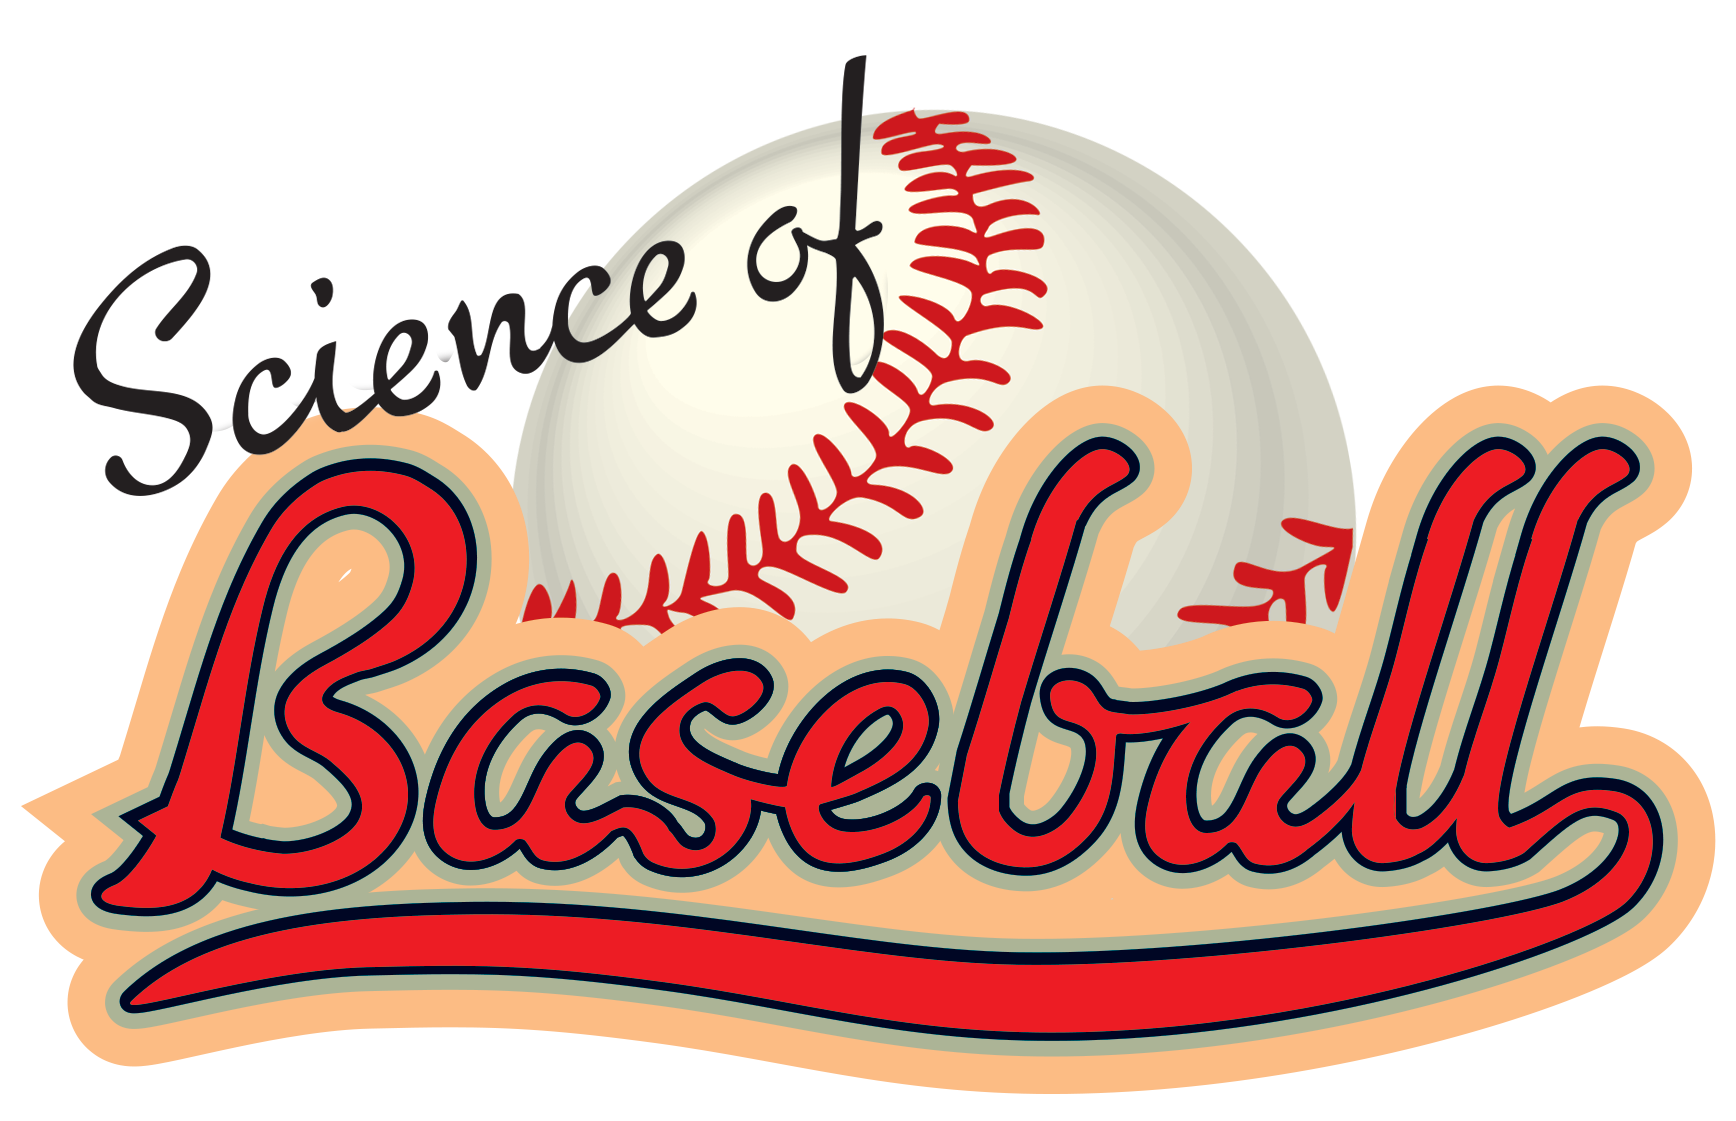 Stopwatch clipart reaction time. Scienceofbaseball logo png science